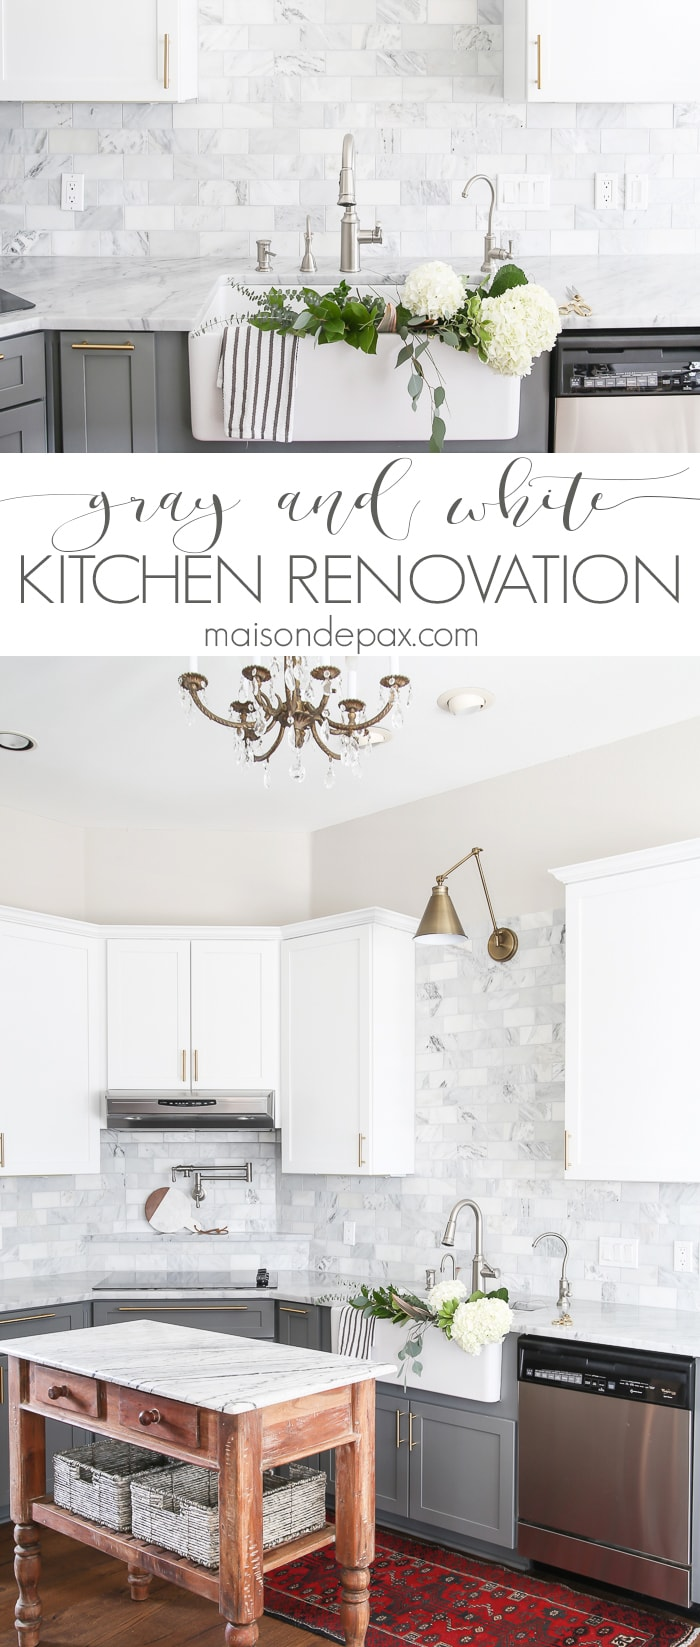 gray and white kitchen renovation